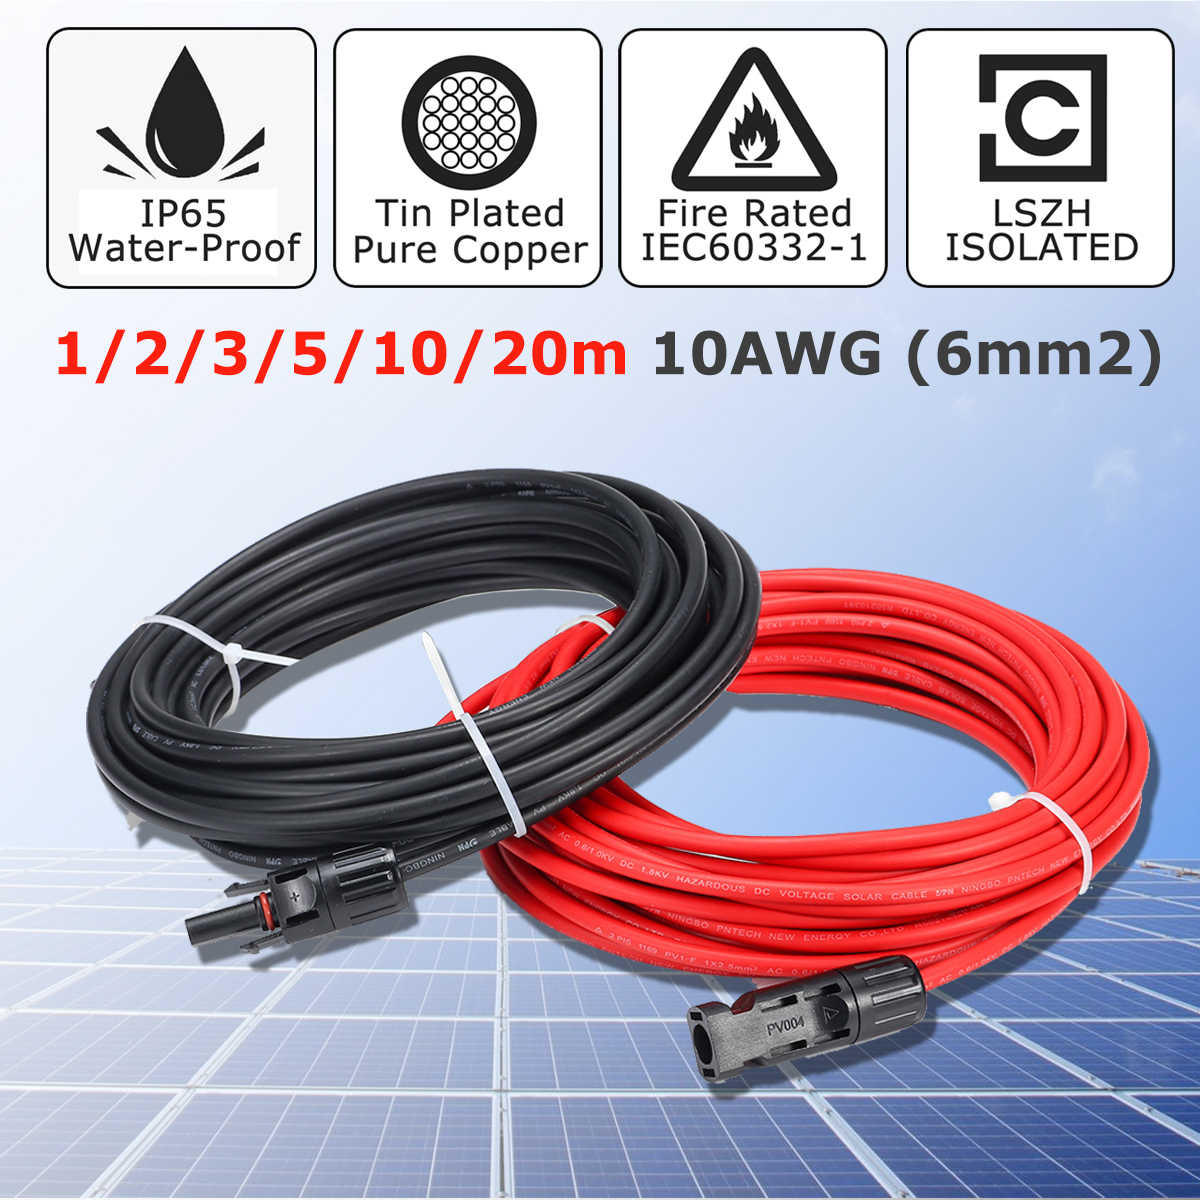 KINCO 1 Pair Solar Panel Extension Cable Copper Wire Black and Red with MC4 Connector Solar PV Cable 6mm 10AWG